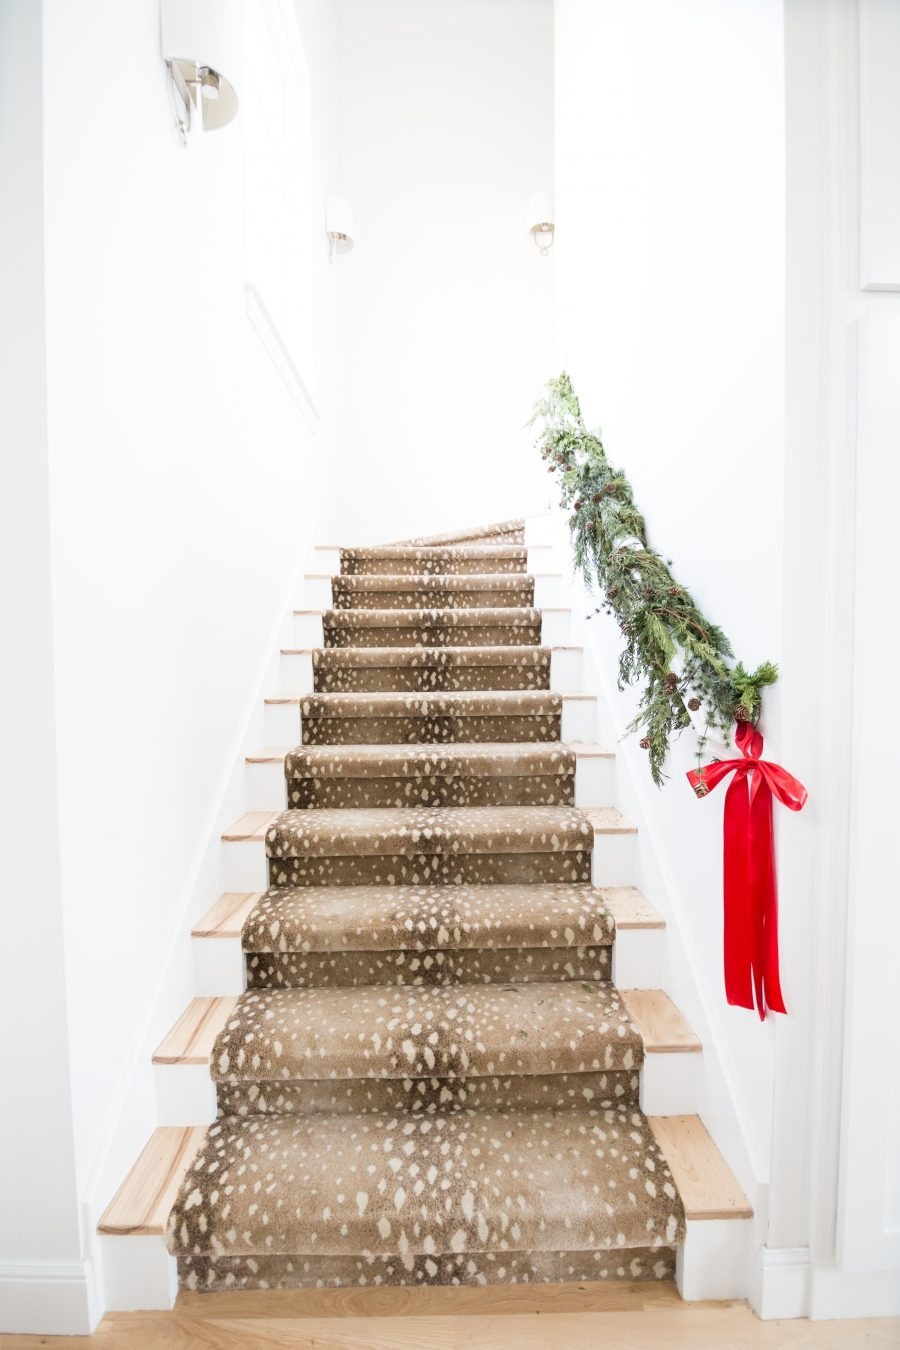 antelope-stairs-Christmas